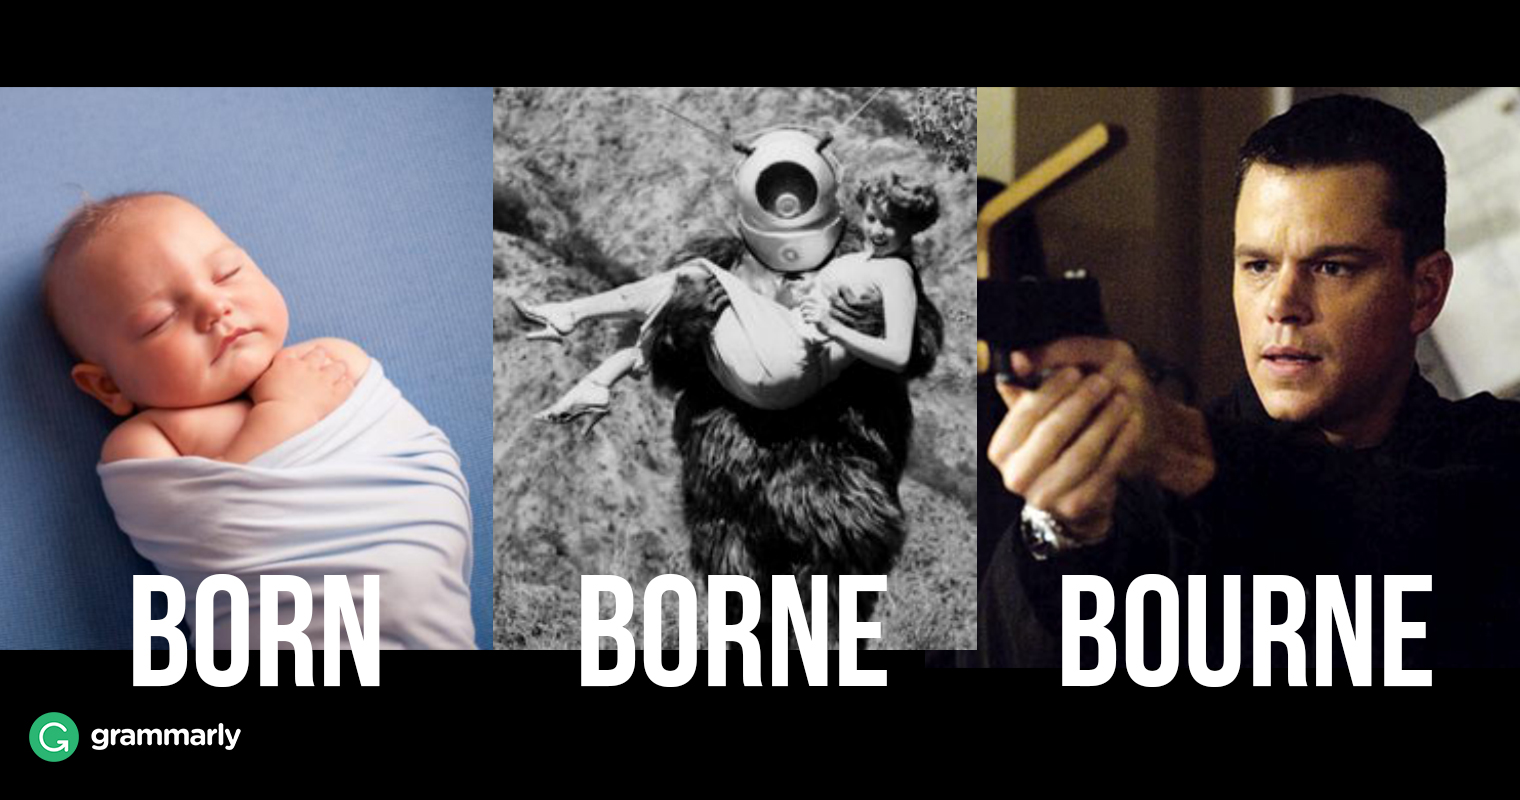 Born vs. Borne image